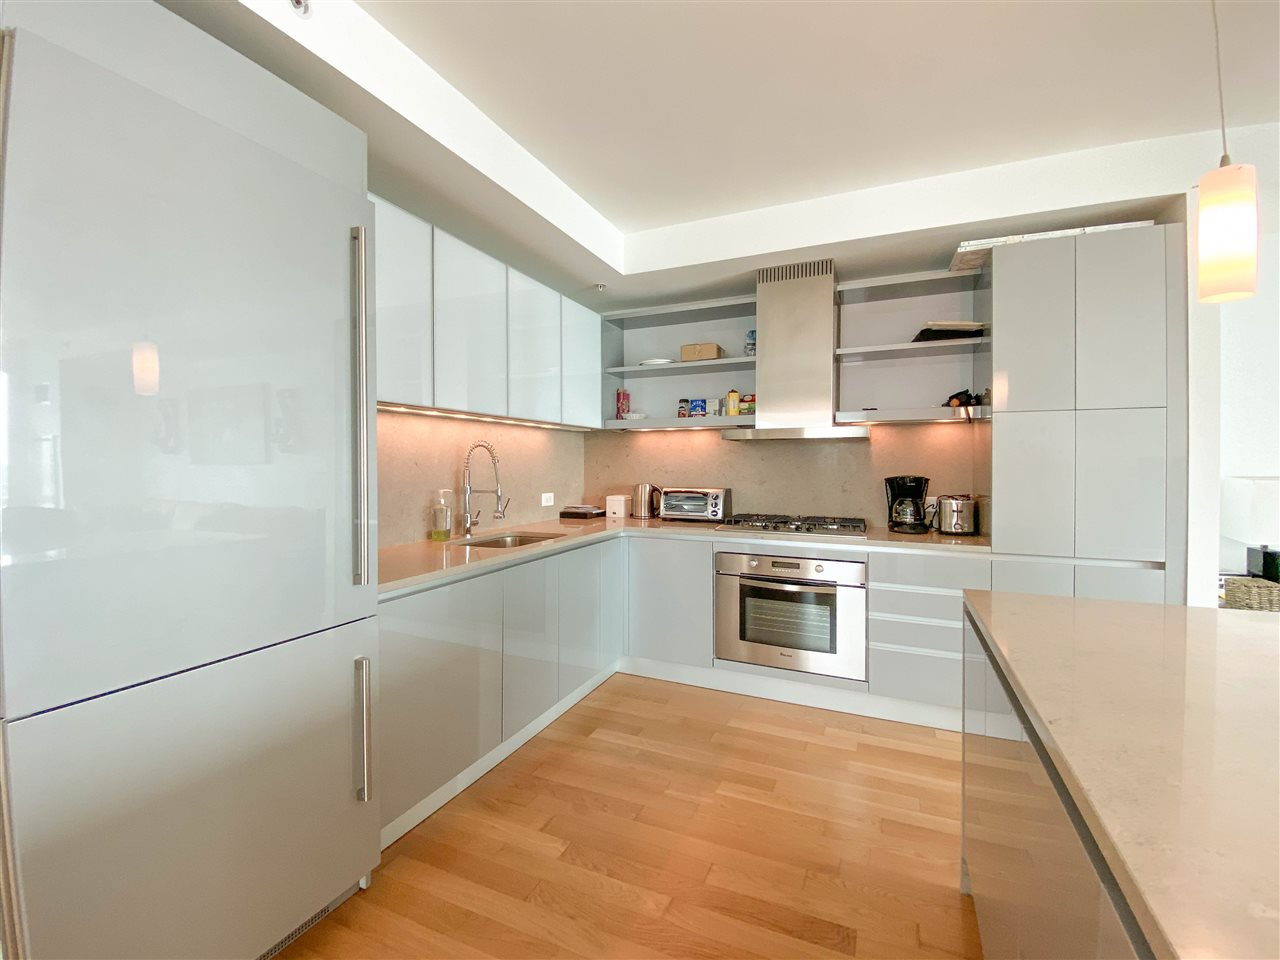 Luxury living awaits you in this sun drenched condo at 77 Hudson! This fully furnished home boasts a fabulous modern kitchen with stainless steel appliances, hardwood floors, marble bath & floor to ceiling windows with a view of NYC! Building features a 44,000 sq. ft. amenities floor w/pool & hot tub, grill area, fire pit, landscaped park, screening room, gym, yoga room, steam room & more. All this and just moments from the Exchange Place PATH & Ferry terminal make this home a dream come true!